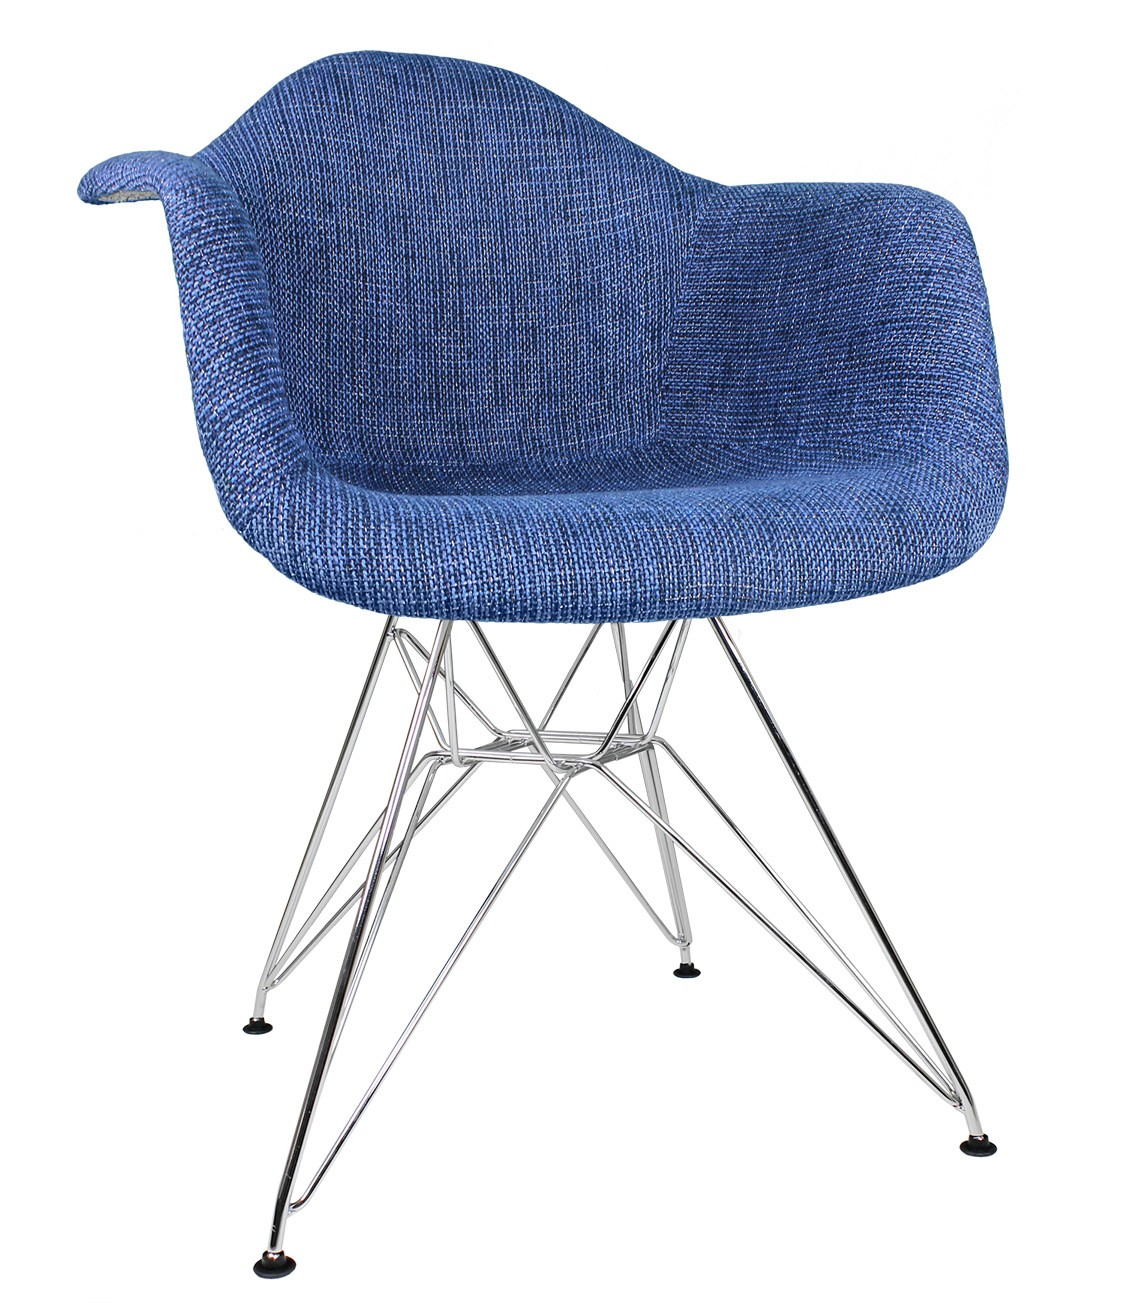 Denim Blue Woven Fabric Upholstered Eames Style Accent Arm Chair